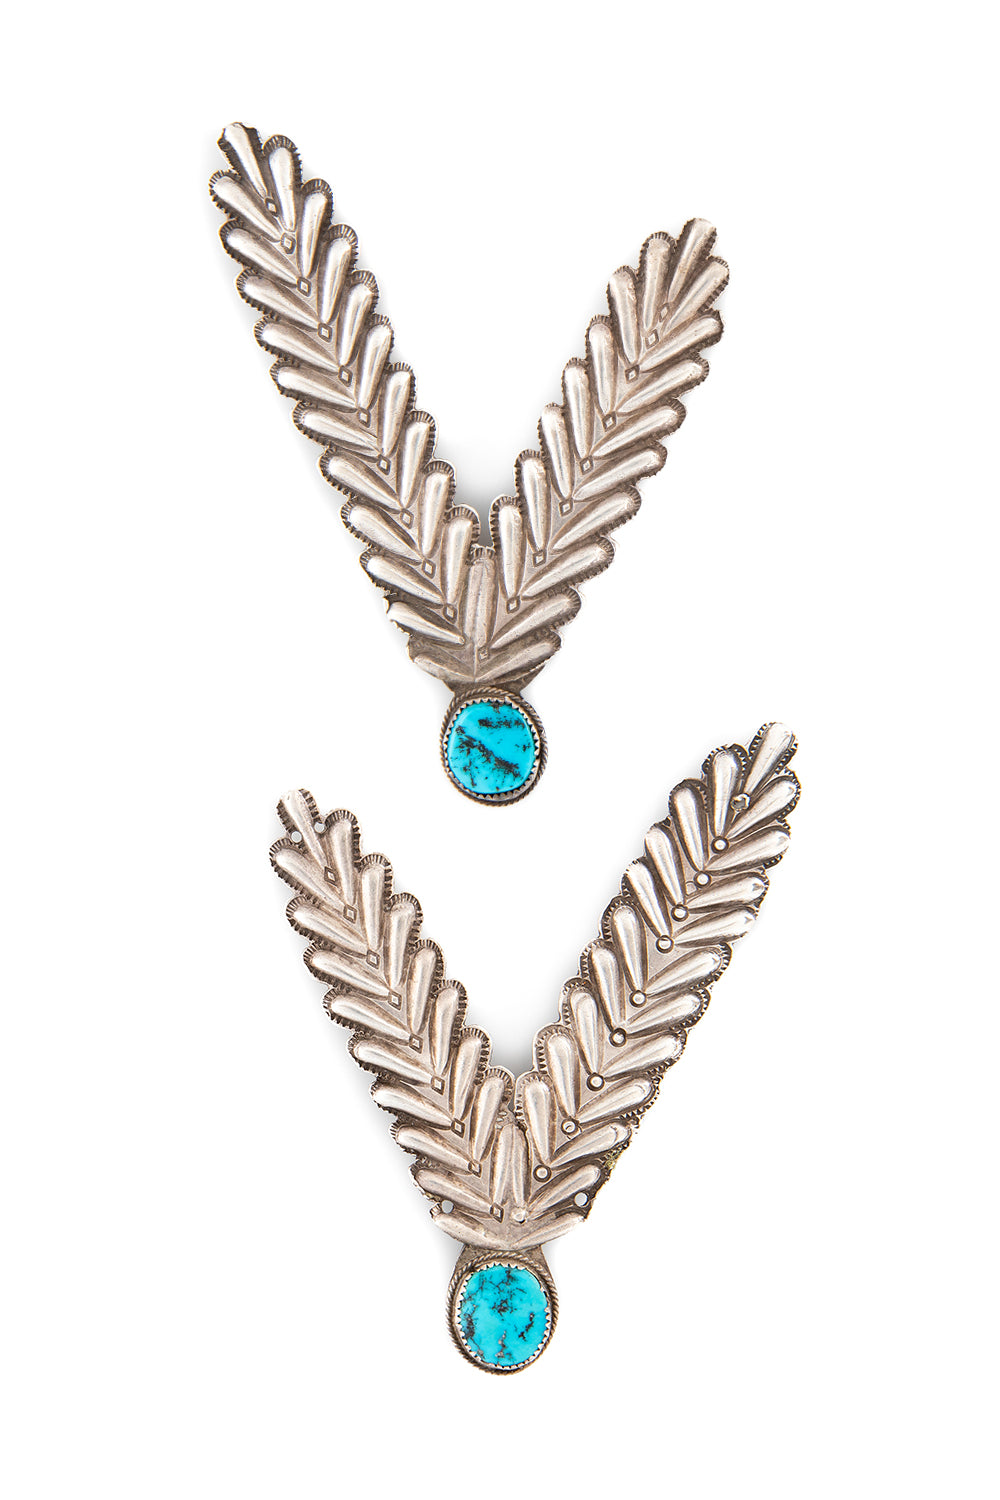 Collar Tips, Sterling & Turquoise, Old Pawn, 295